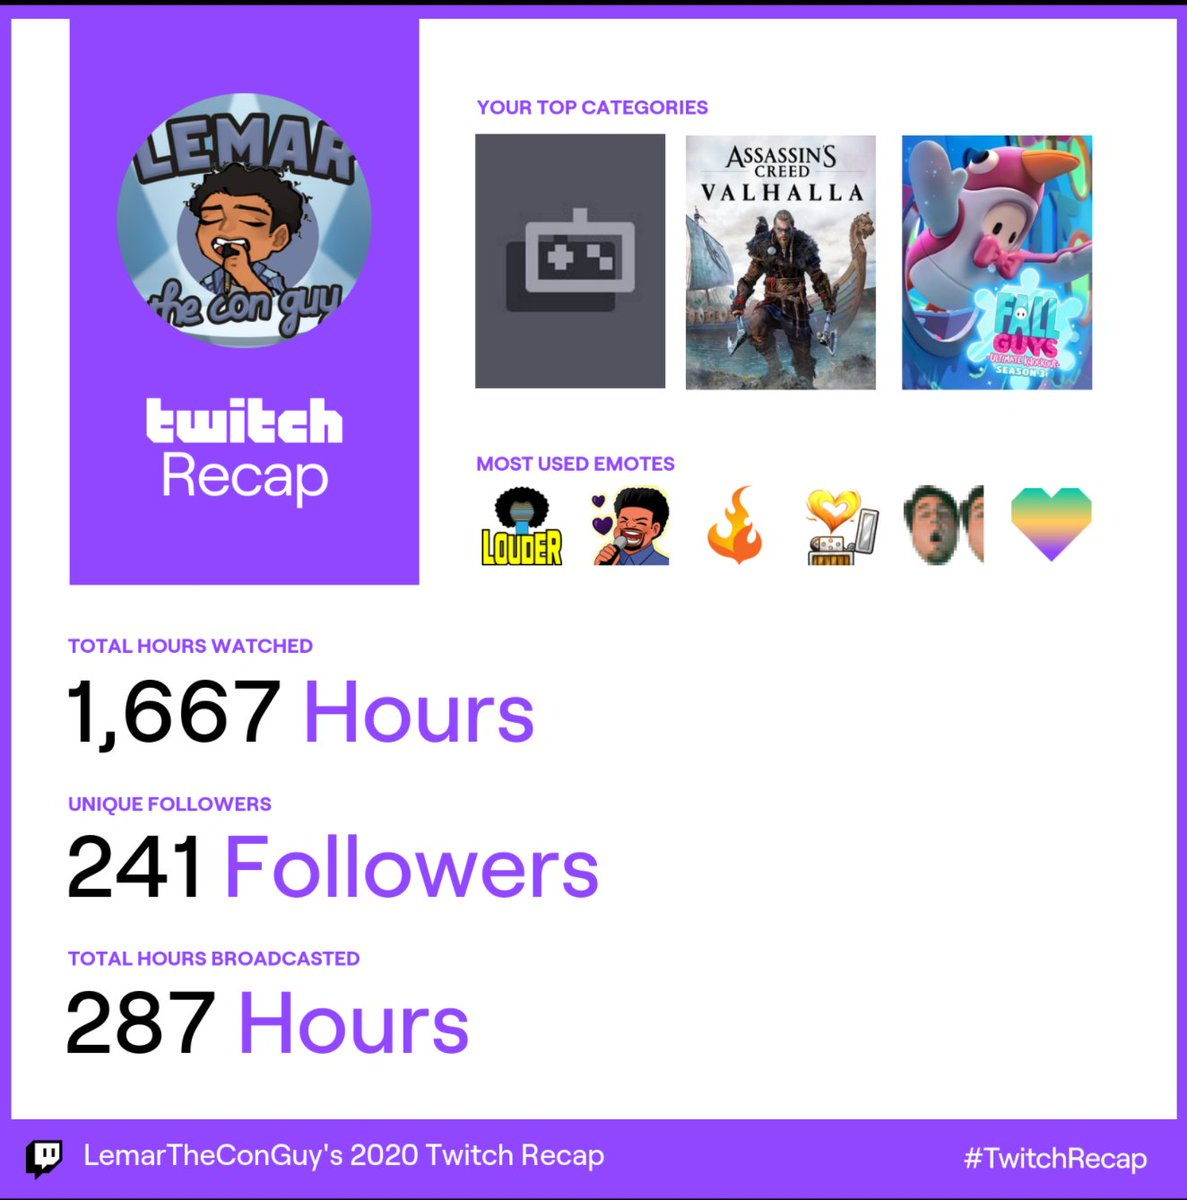 The link to my #twitchrecap is broken. So here is a screenshot instead of an actual good image.   BTW: The game I streamed the most in 2020 was Twitch Sings....